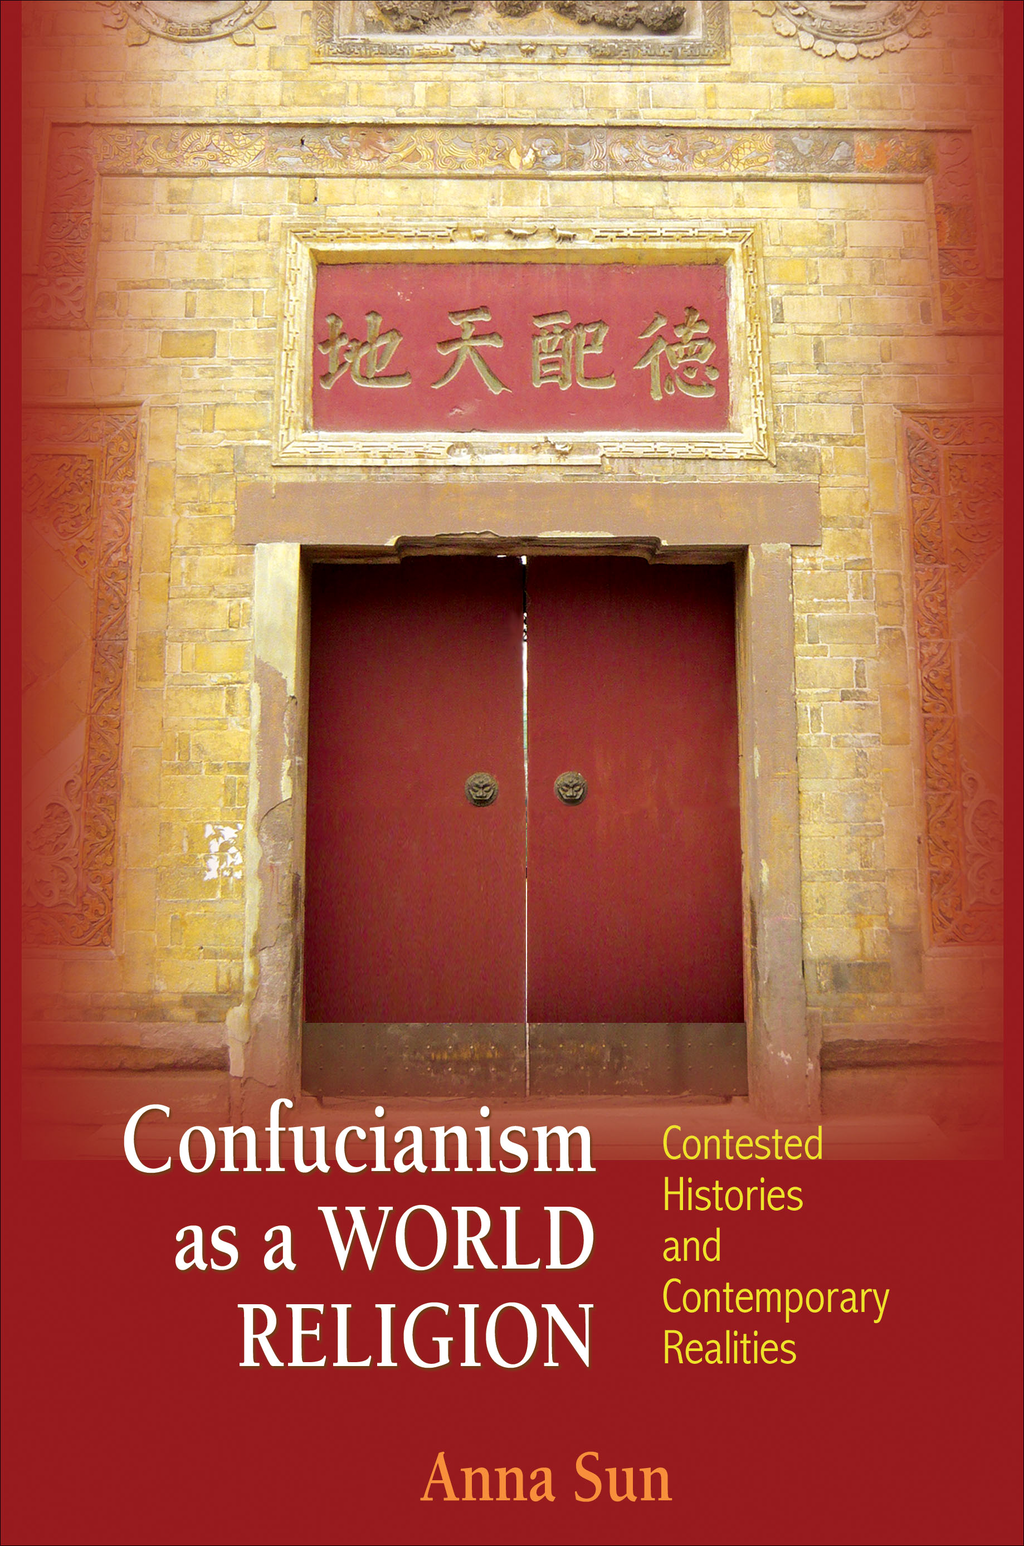 Confucianism as a World Religion Contested Histories and Contemporary Realities